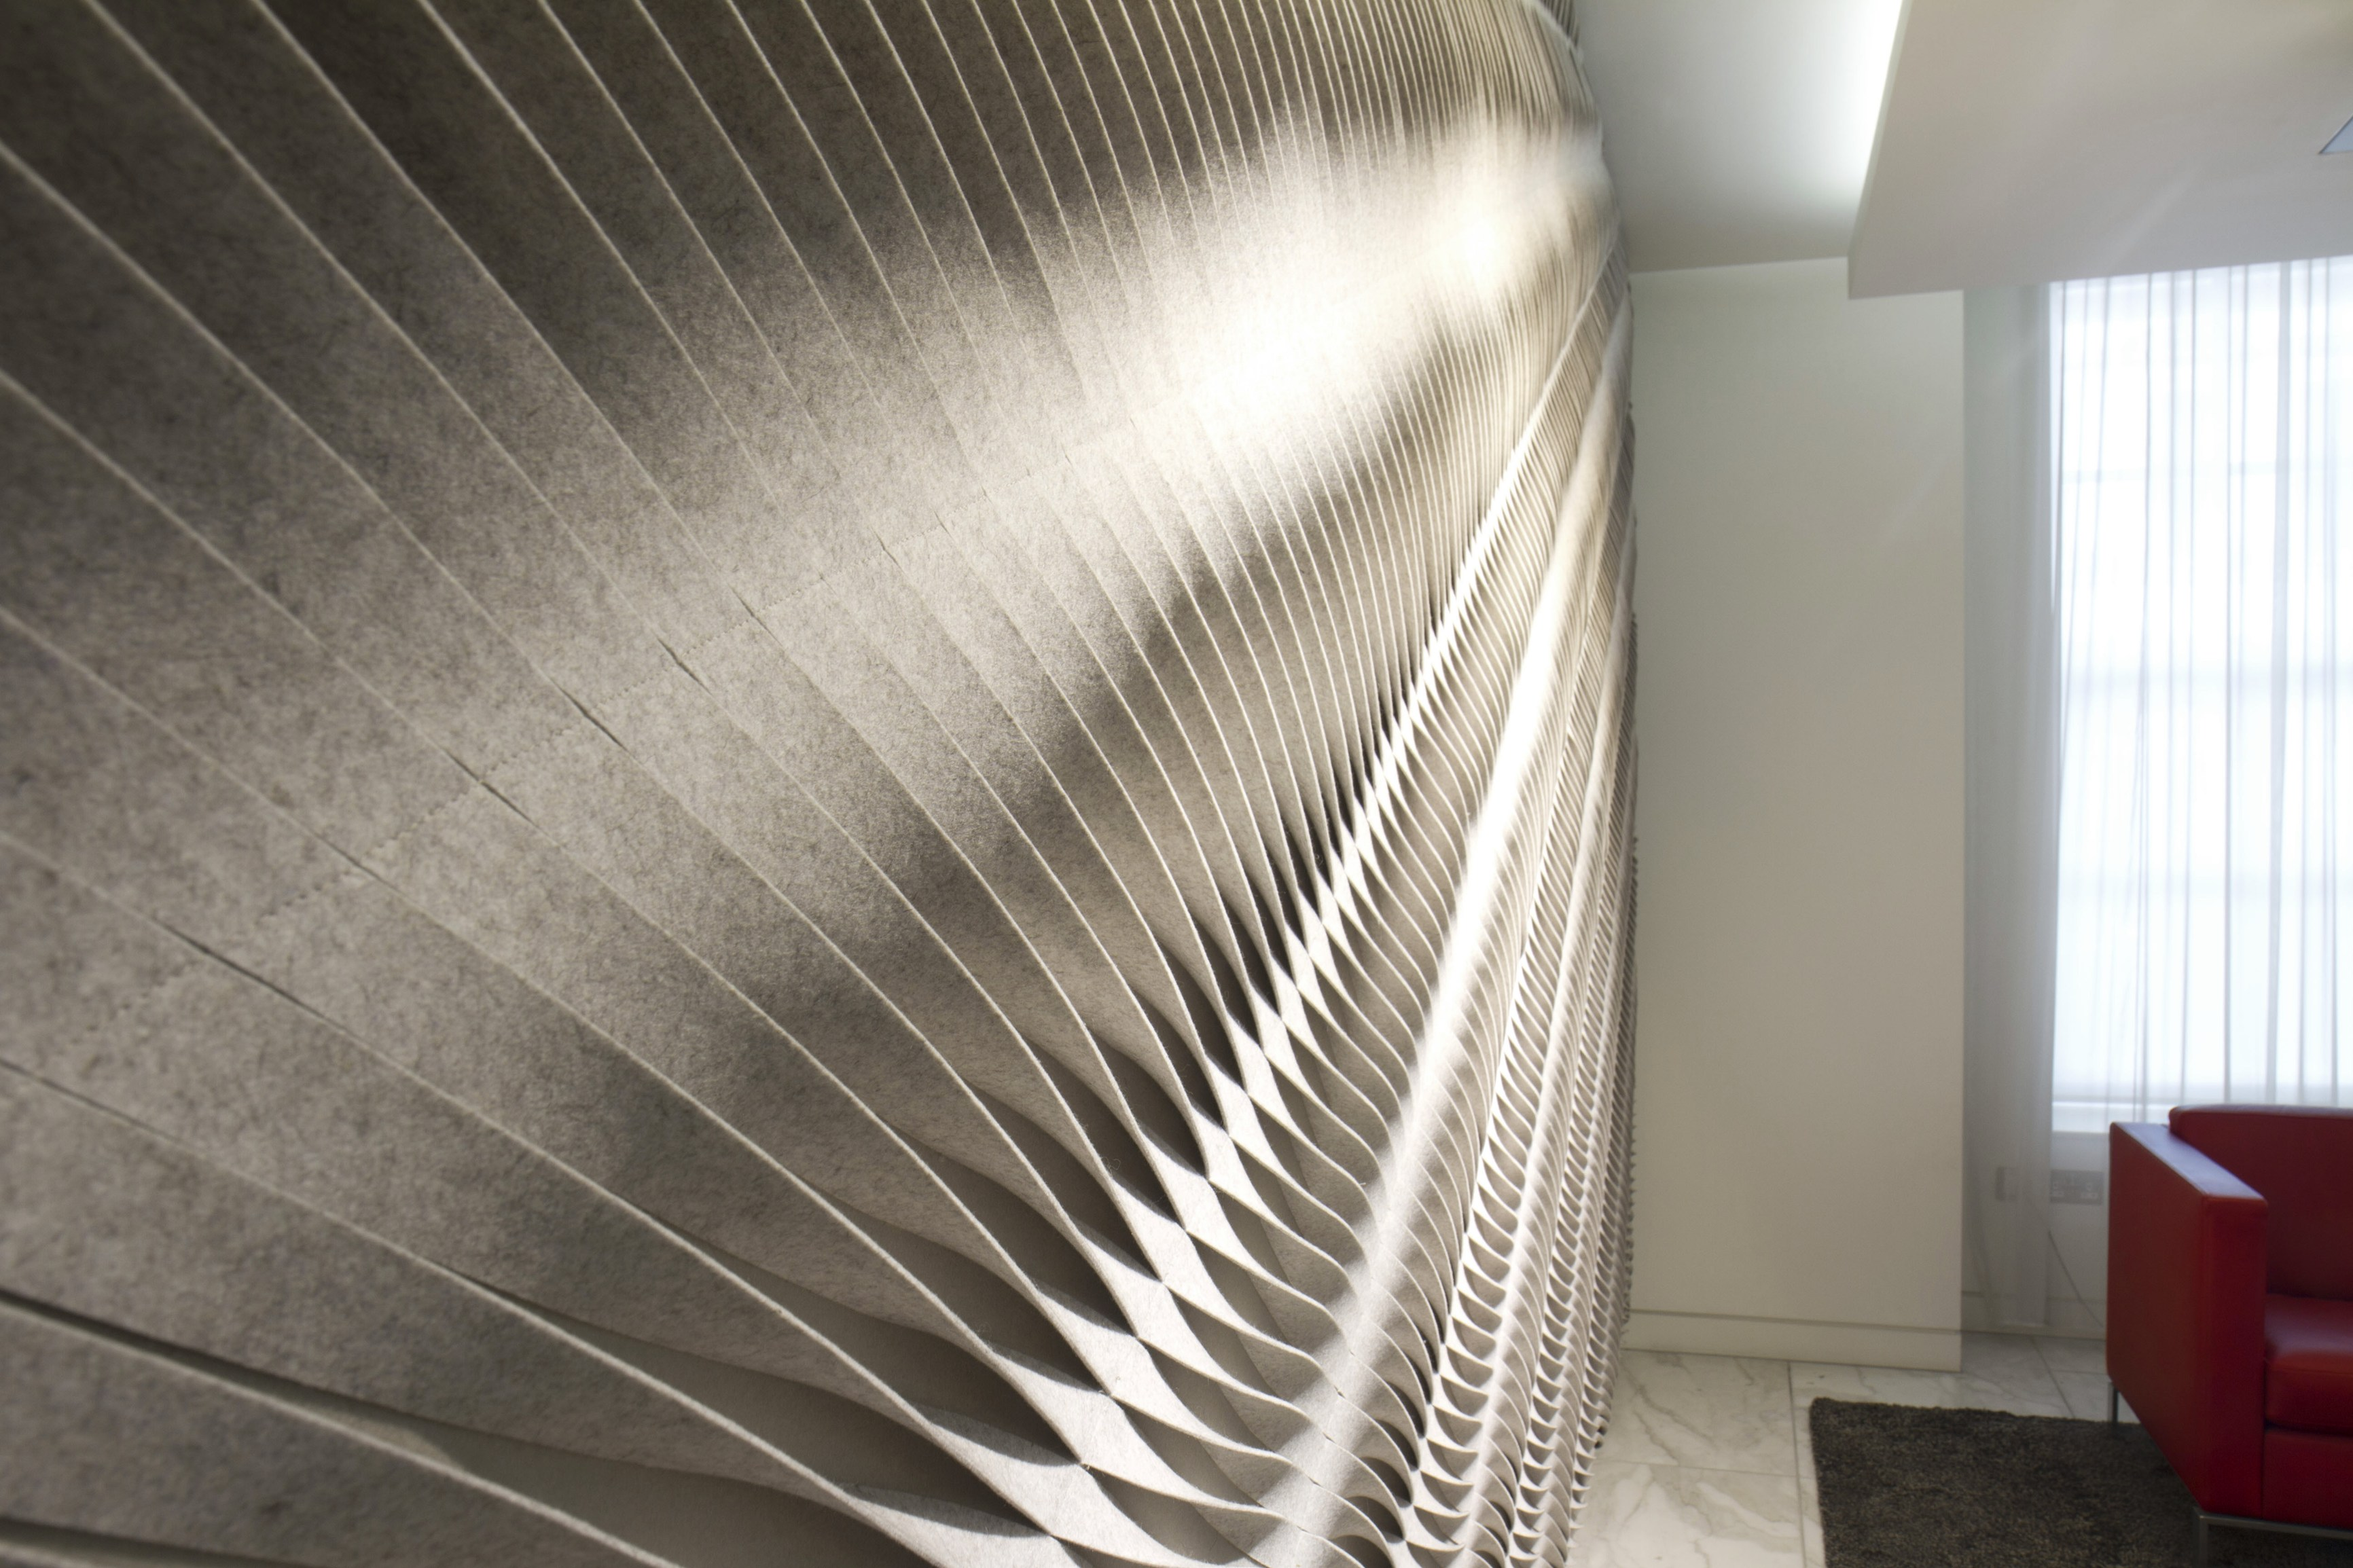 Leaf fabric decorative acoustical panels by anne kyyr quinn design anne kyyr quinn - Decorative acoustic wall panels ...